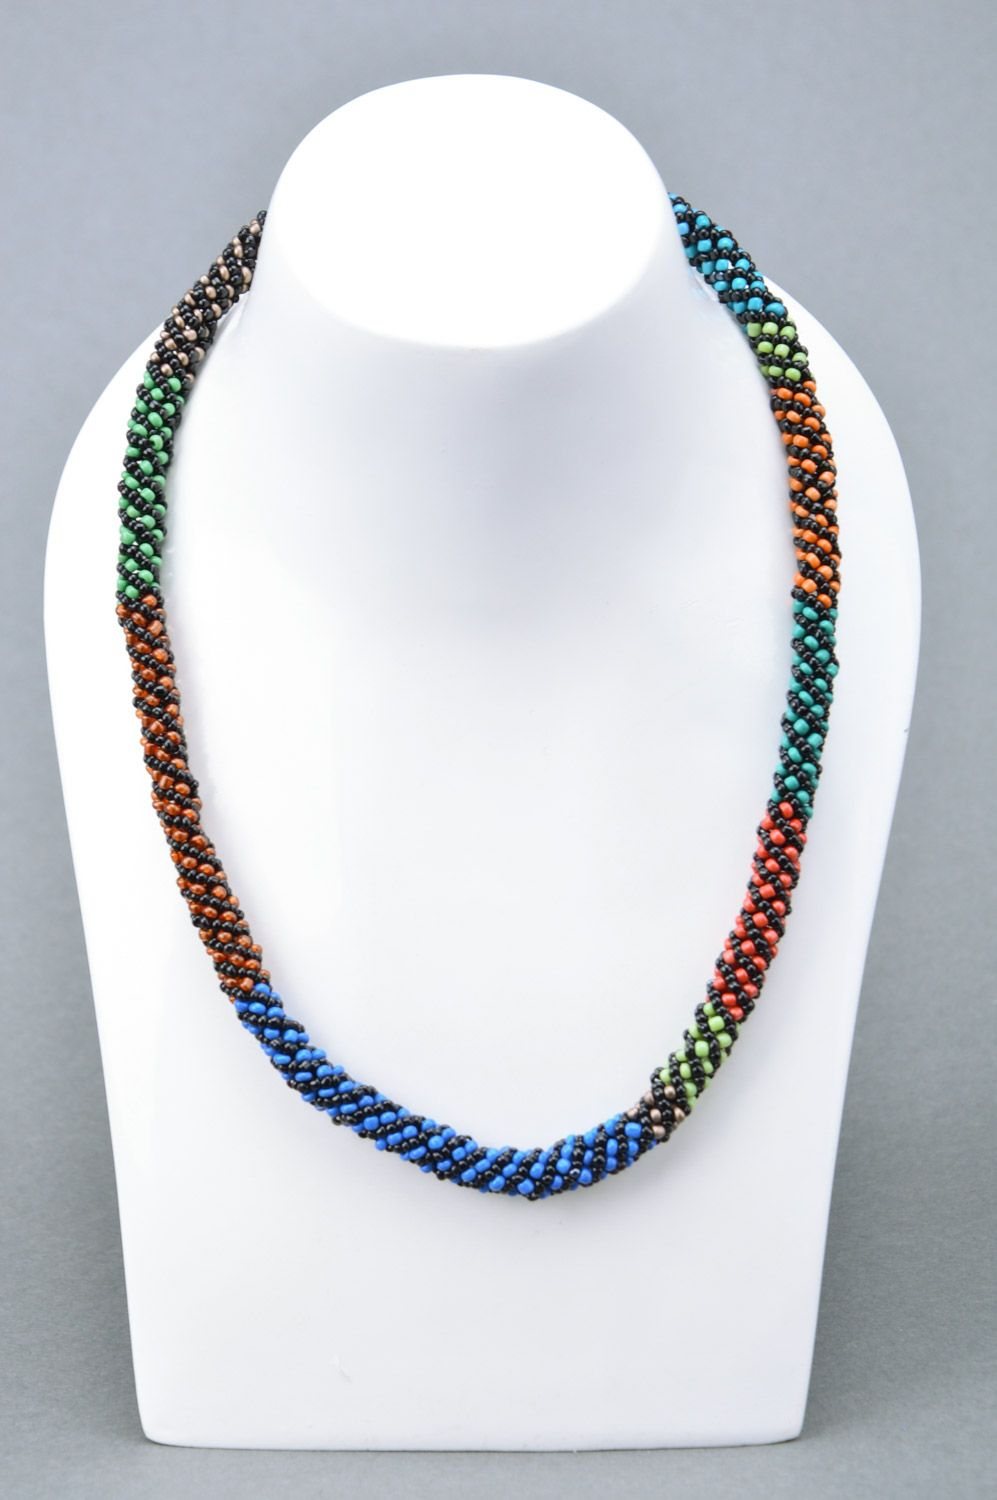 Handmade designer colorful beaded cord necklace Savanna for elegant ladies photo 1